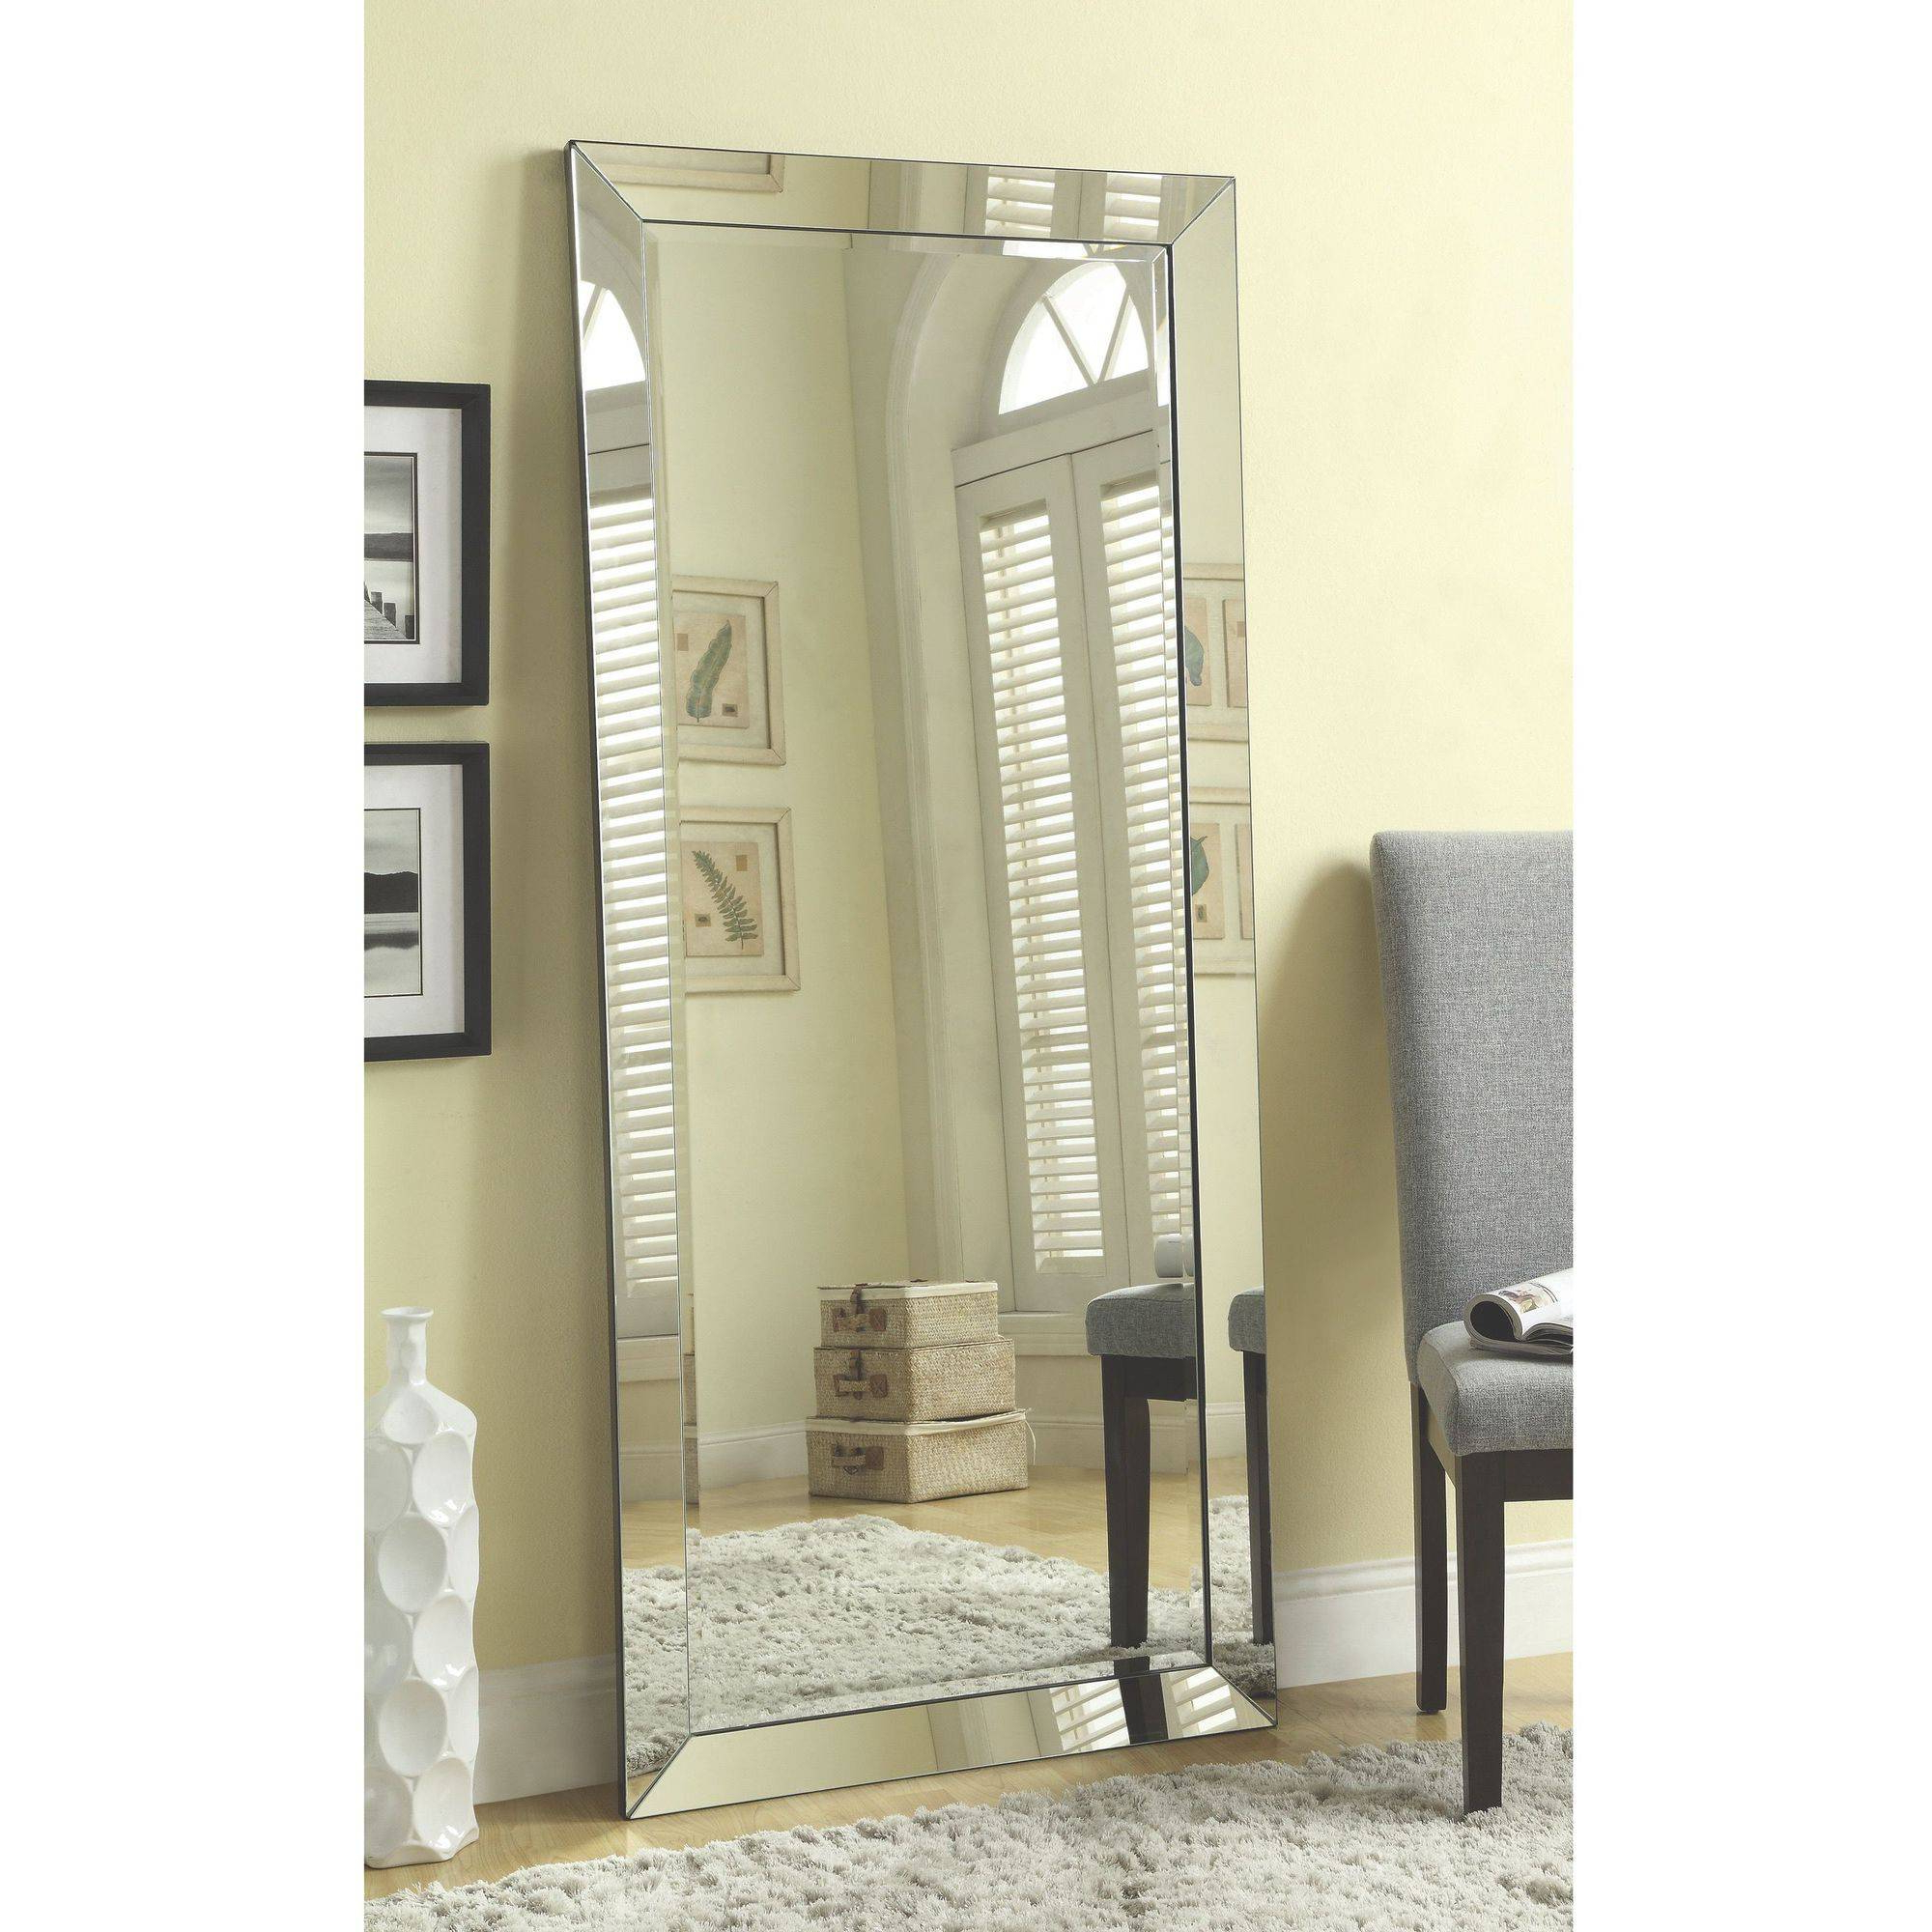 Top 34 Dandy Long Wall Mirrors Mirror No Frame Large Frameless Throughout 2020 Big Frameless Wall Mirrors (View 19 of 20)